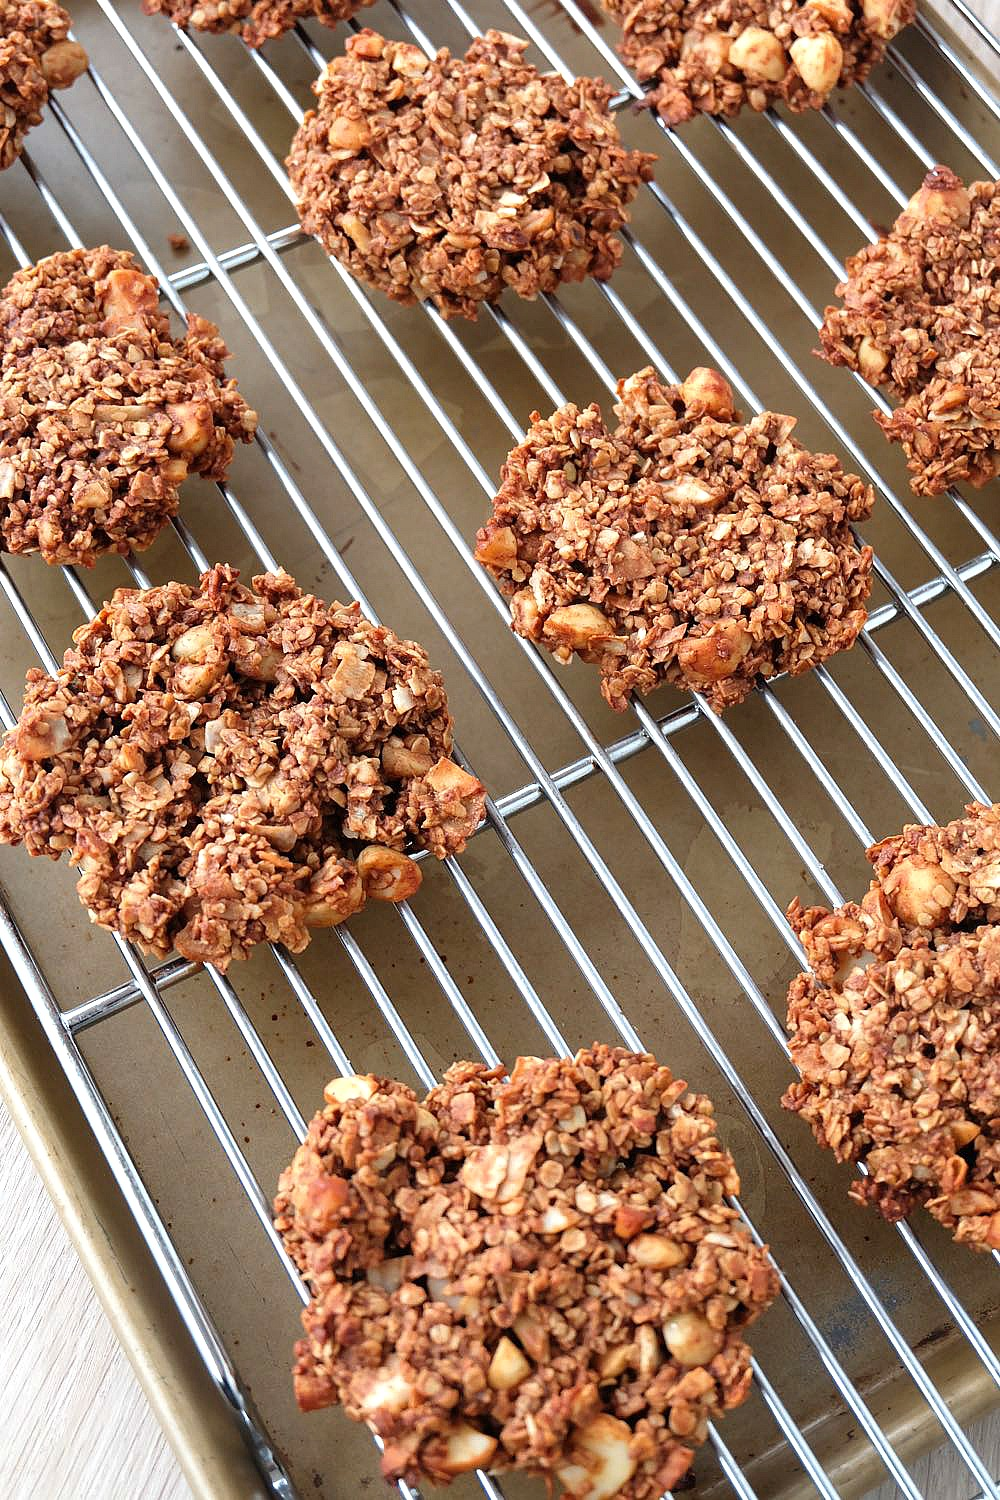 Looking for a delicious, easy and healthy breakfast idea? This chocolate coconut macadamia nut healthy breakfast cookies recipe is a delicious and guilt free way to start the day! Perfect for breakfast on the go, its gluten free, low in sugar, dairy free and packed with superfoods like raw cacao and flax seeds! Freeze extras for breakfast meal planning!